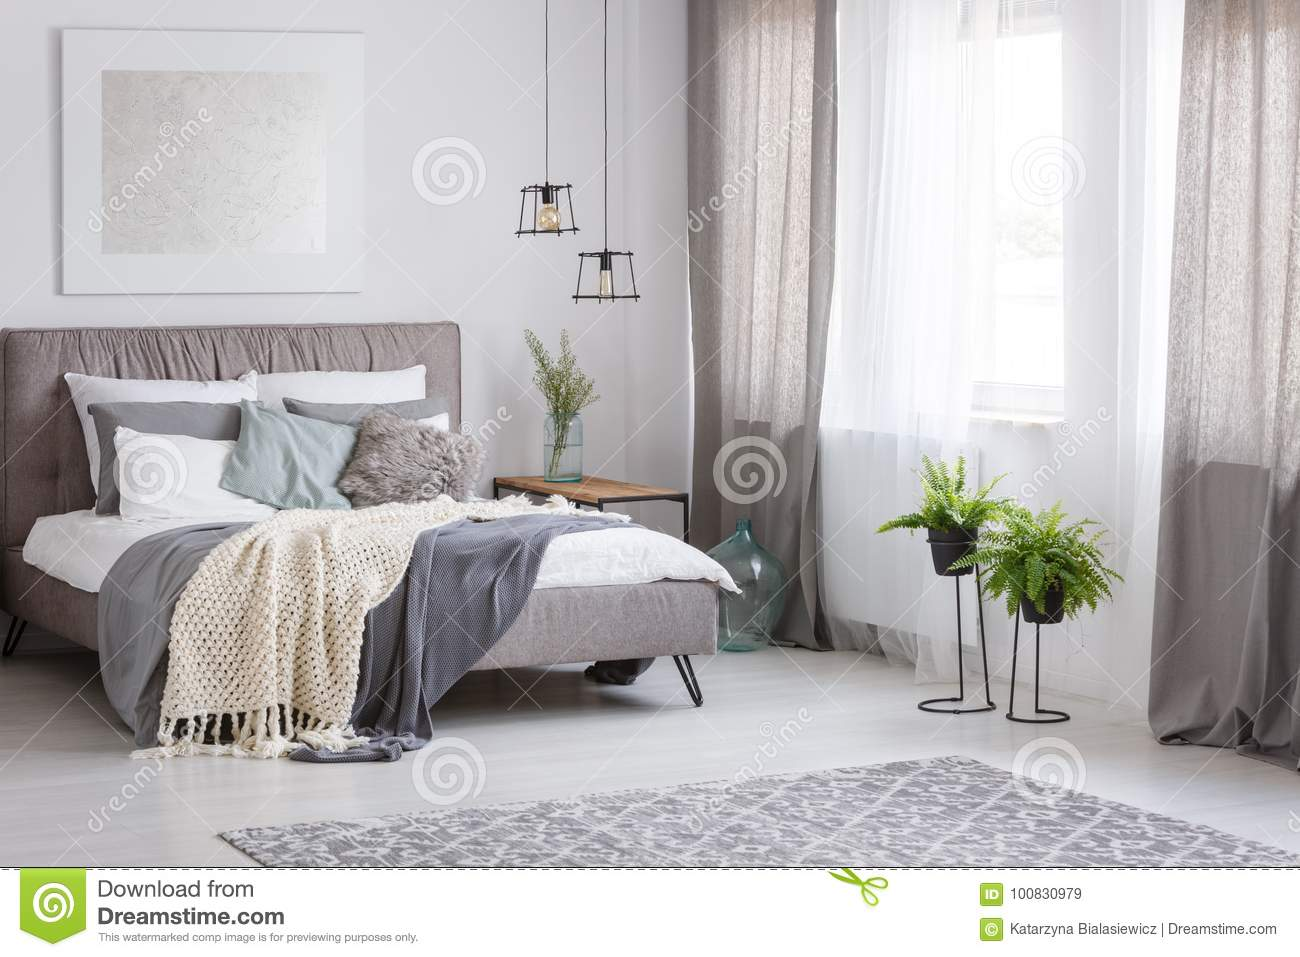 Download Sophisticated Soft Color Bedroom Stock Image   Image Of  Decorative, Flat: 100830979